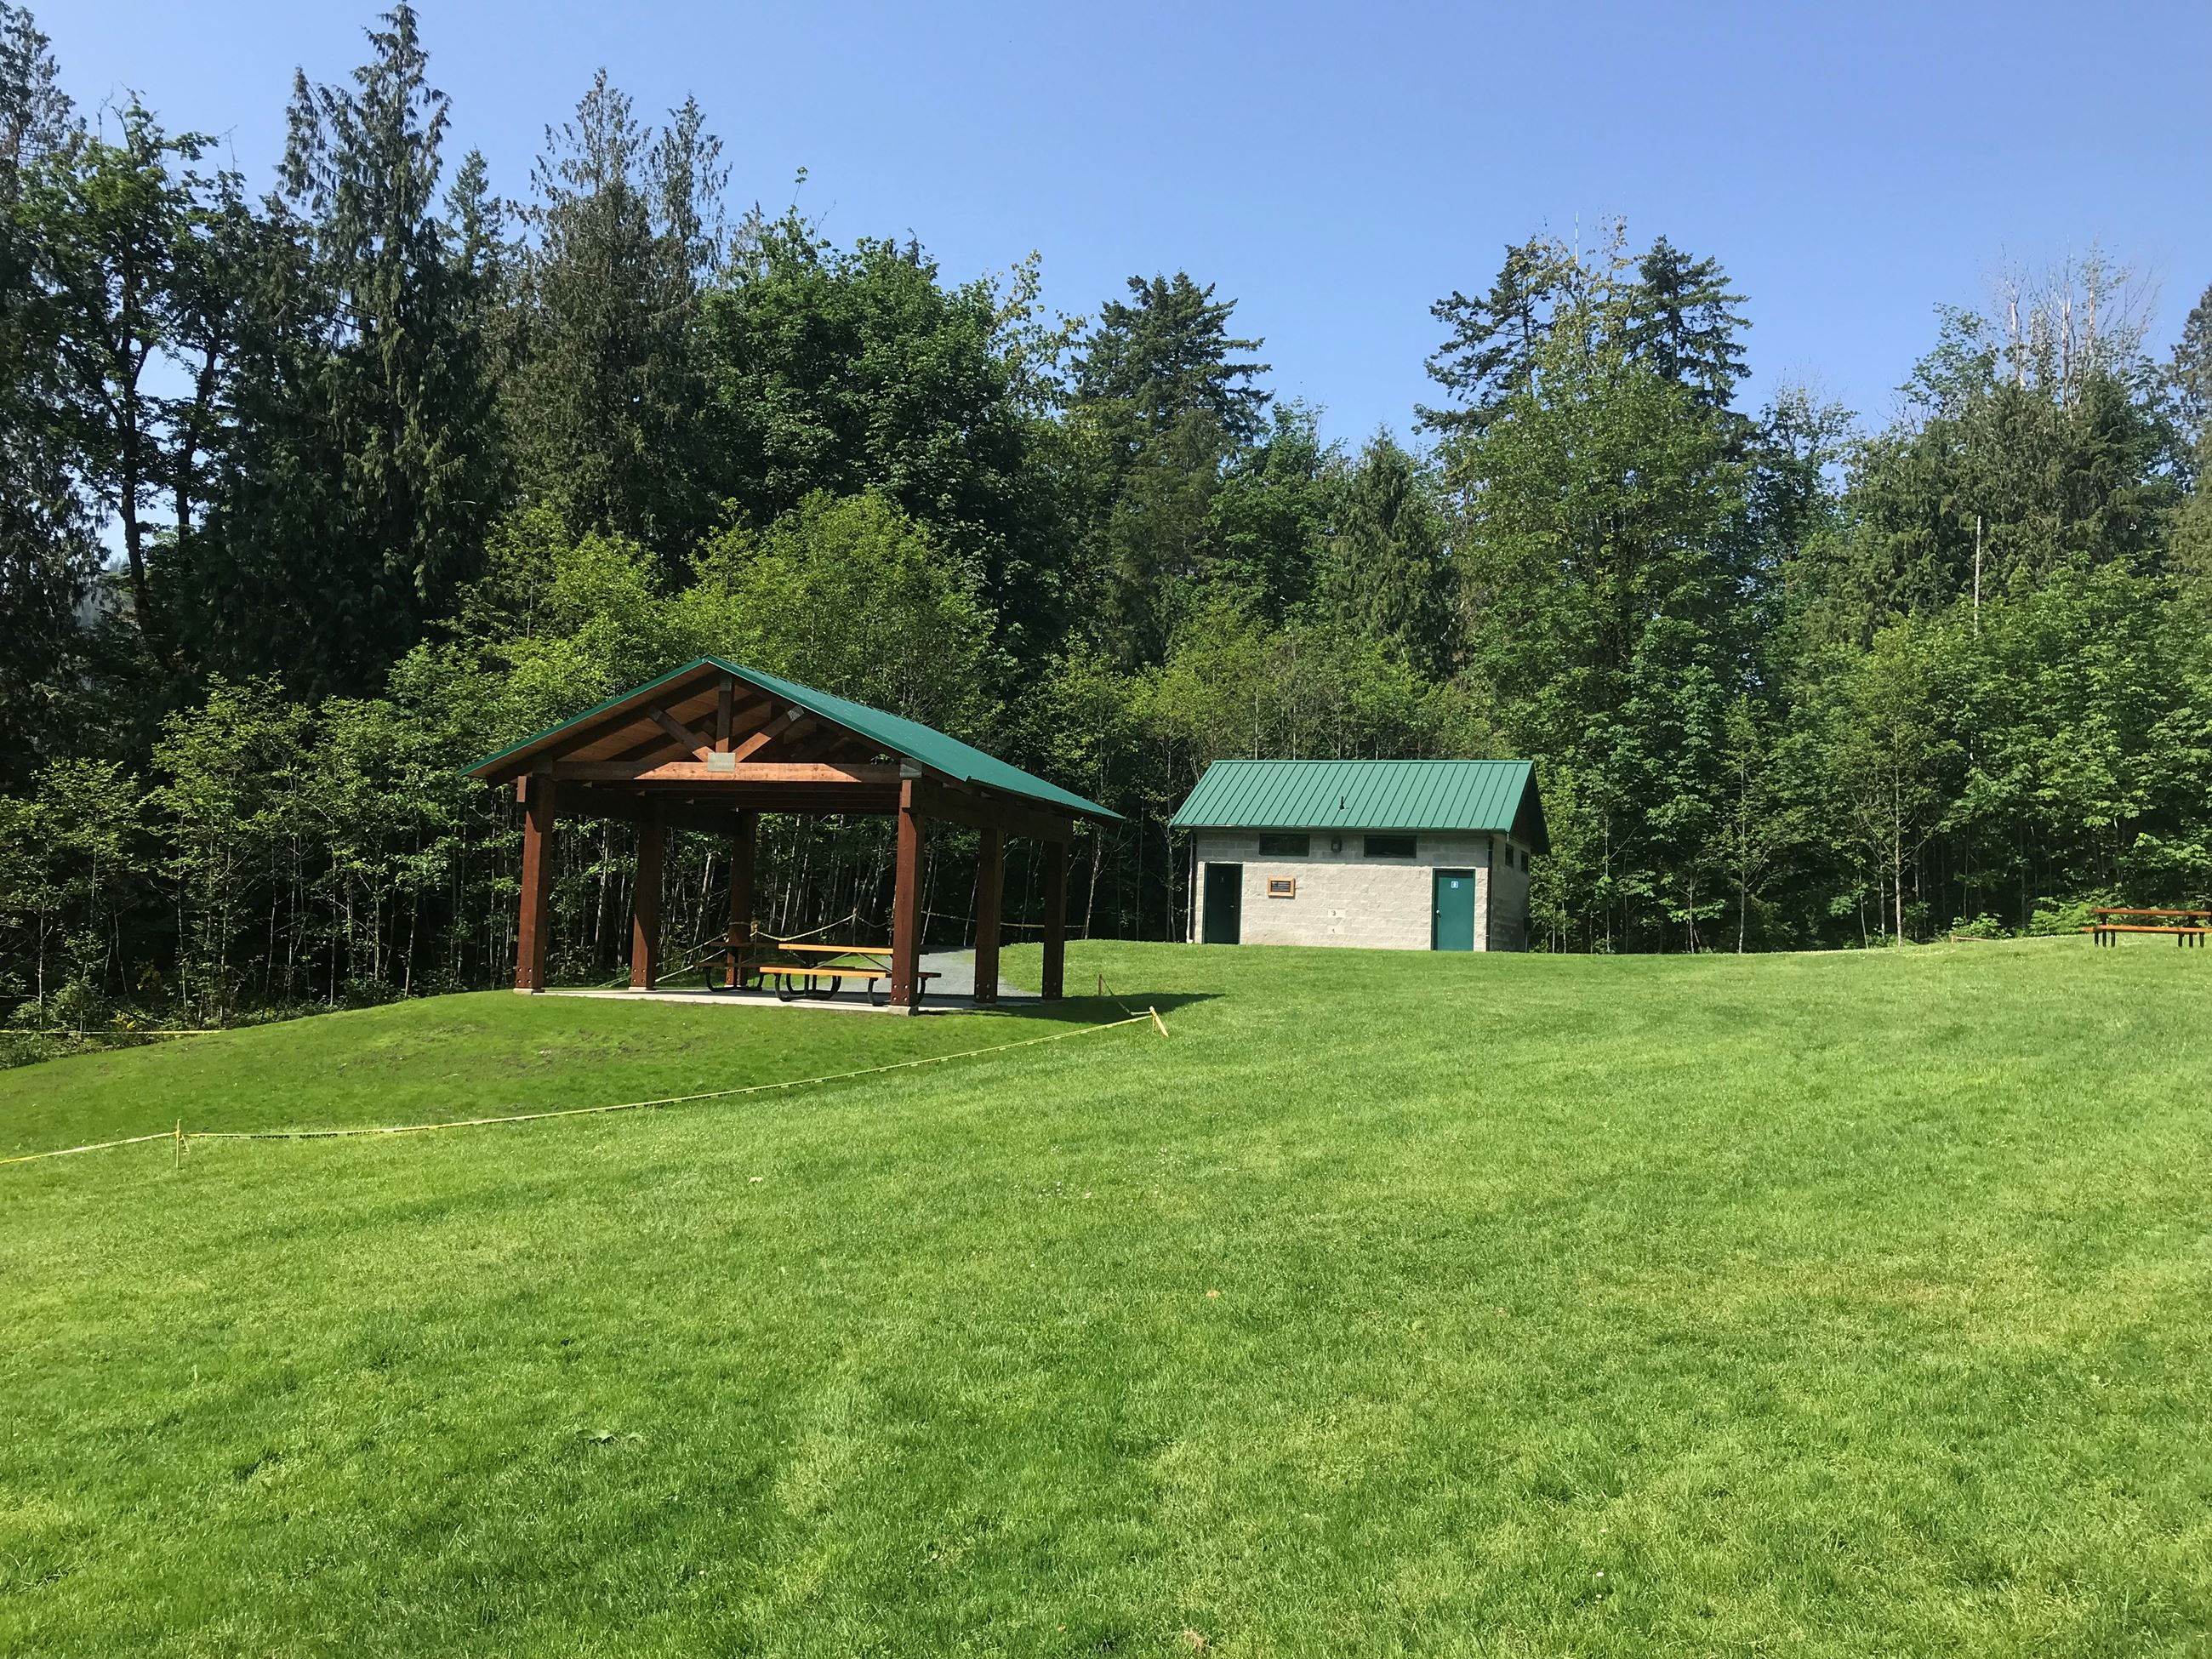 Mile 77 Park Picnic Shelter (Donated)